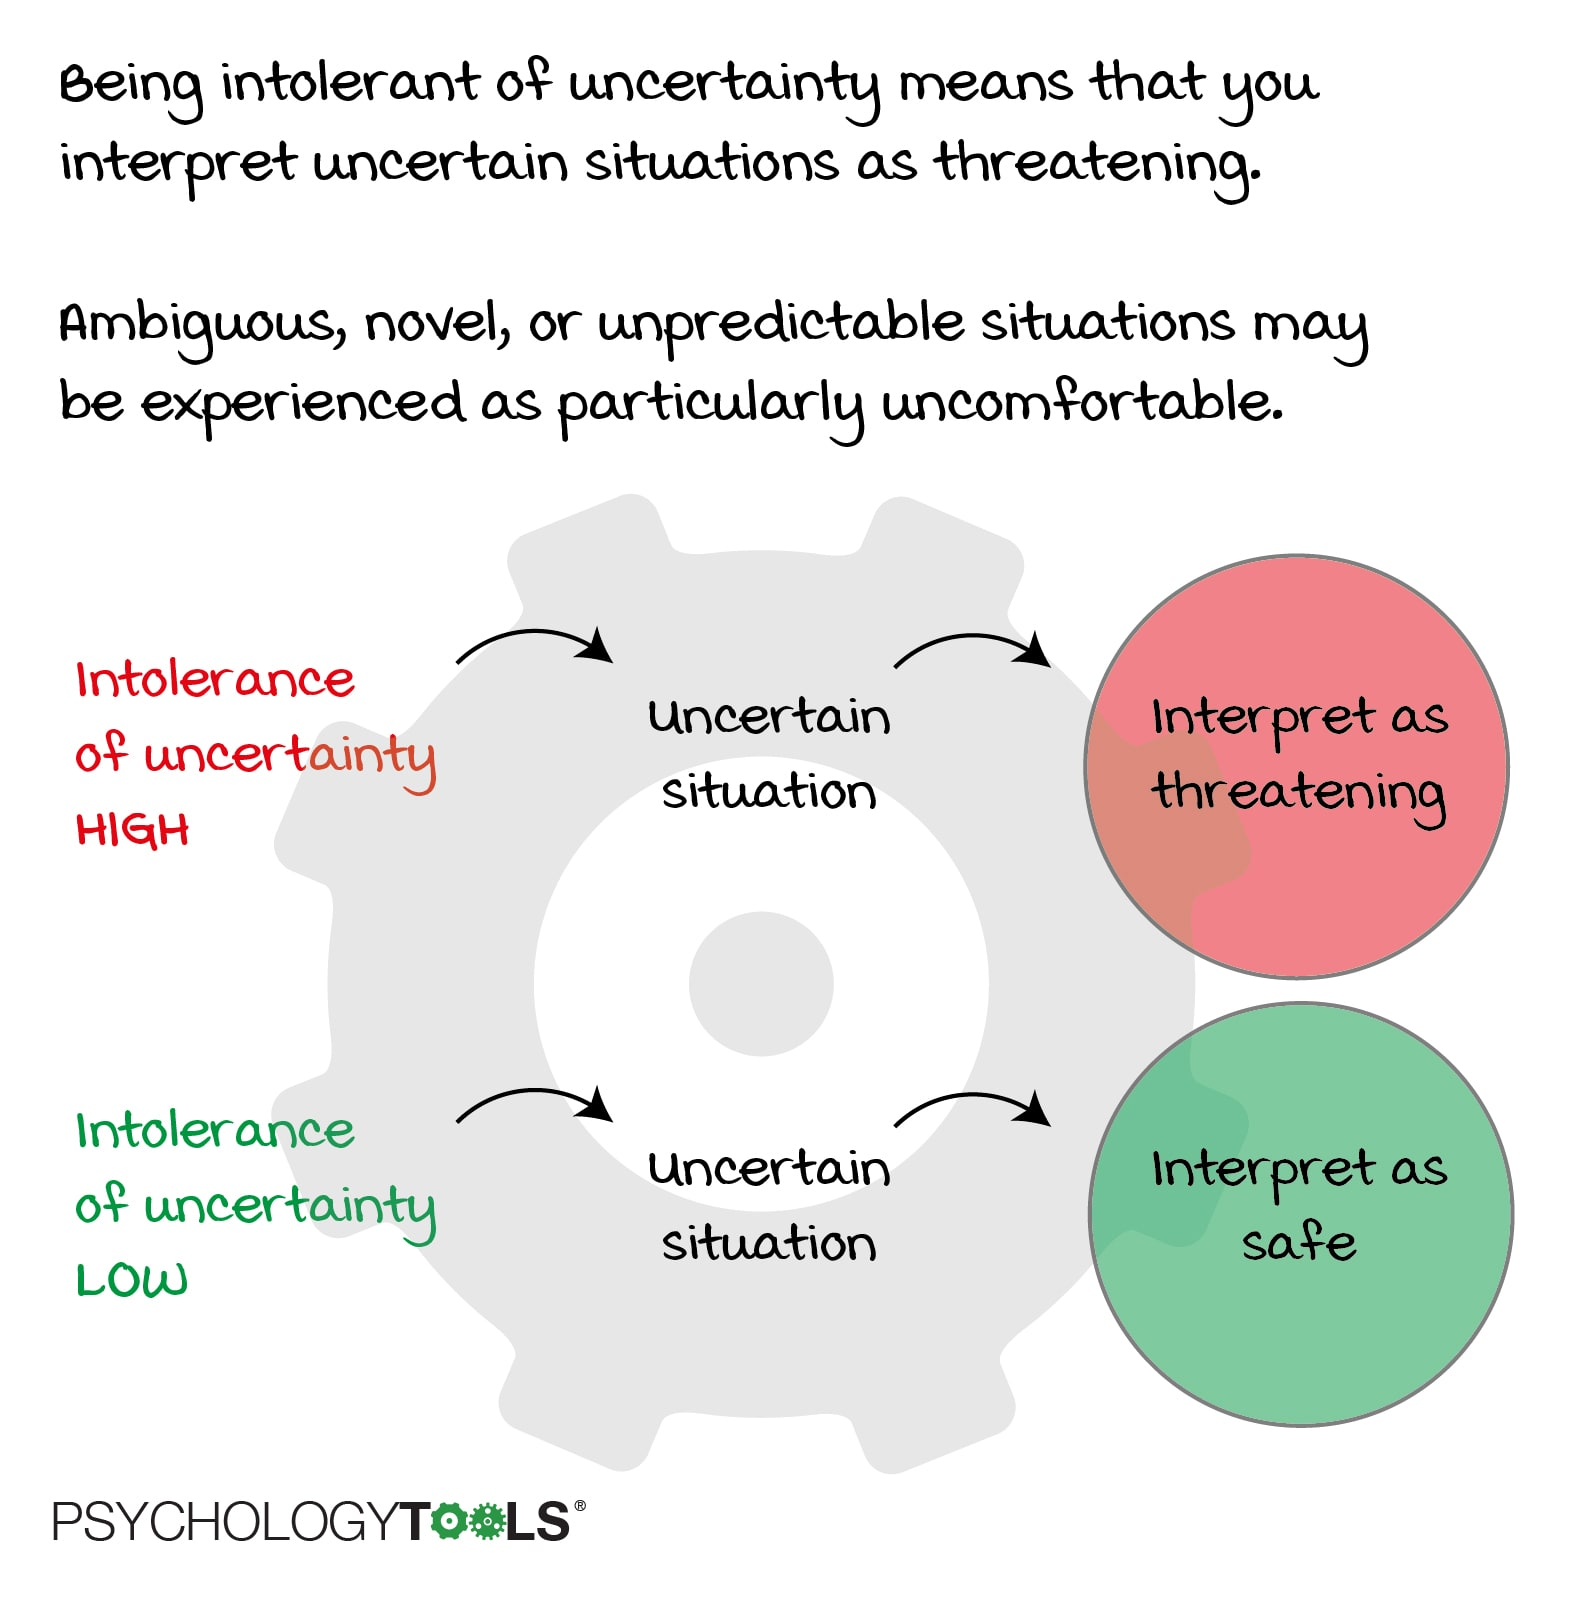 Intolerance of uncertainty makes you more likely to interpret ambiguous situations as threatening.